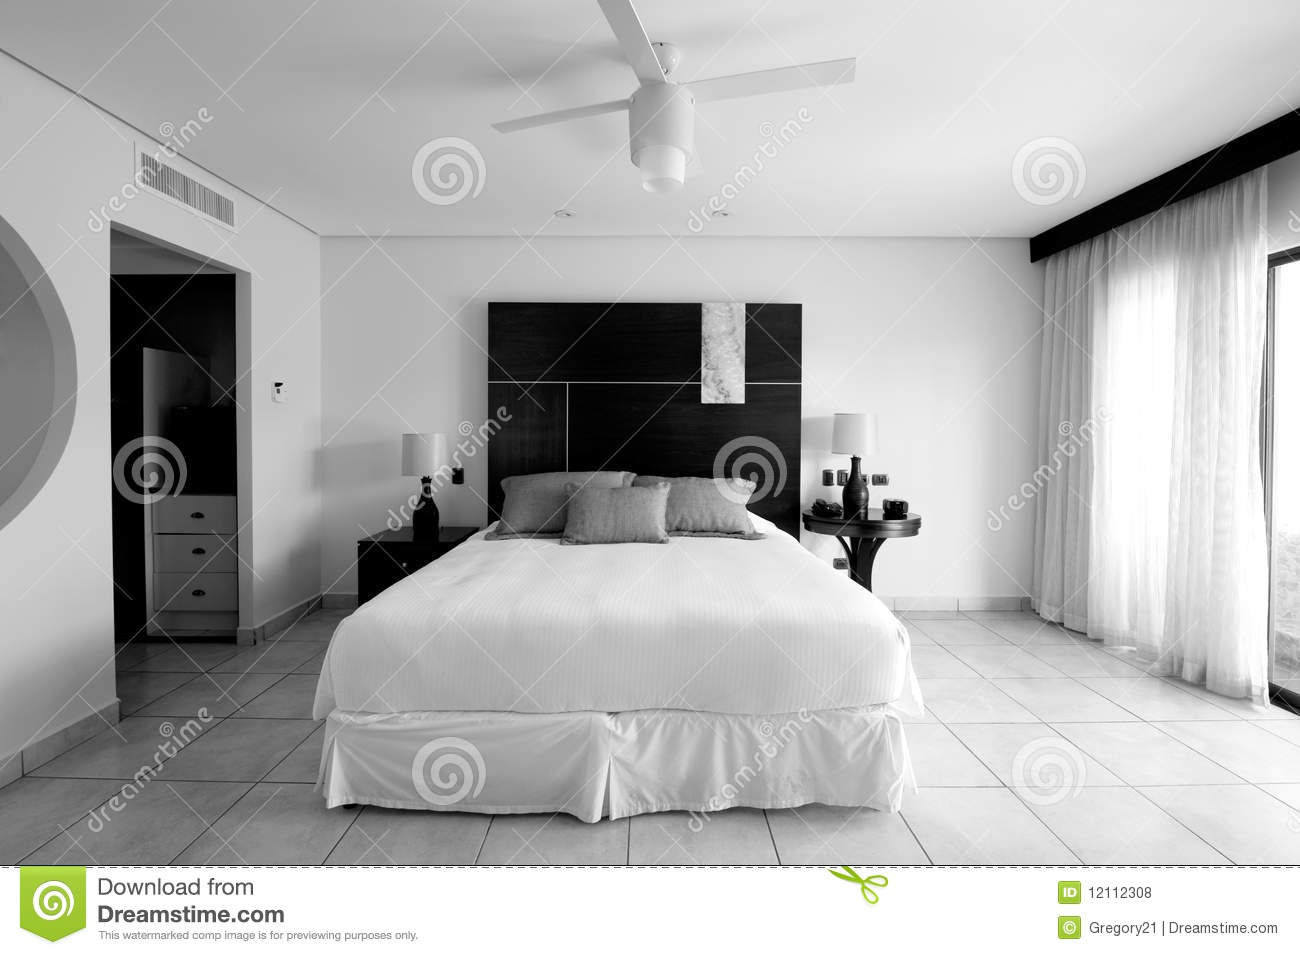 Hotel resort bedroom suite in black and white royalty free for Black bedroom suite